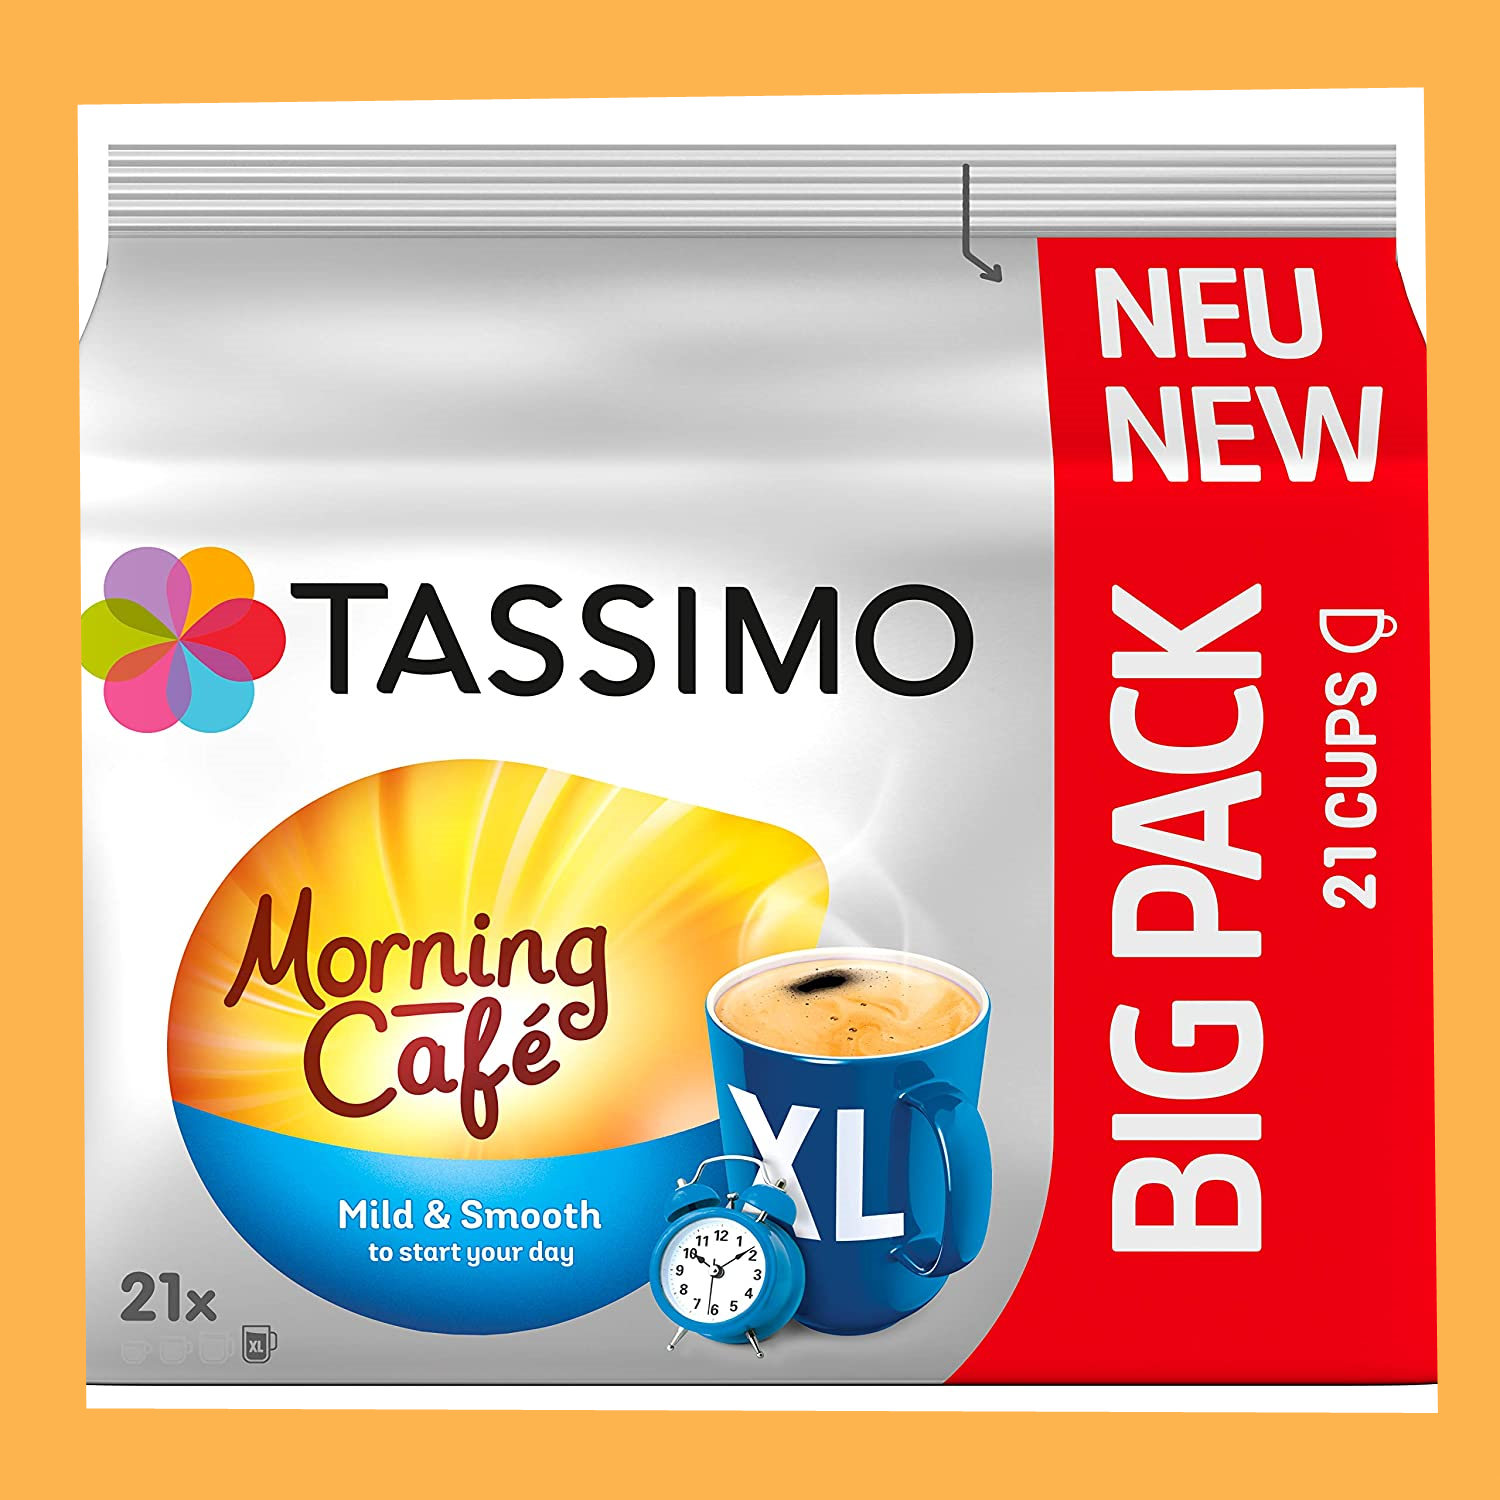 温和的morning start! Tassimo Morning Café XL Mild & Smooth 5 x 21包大包装